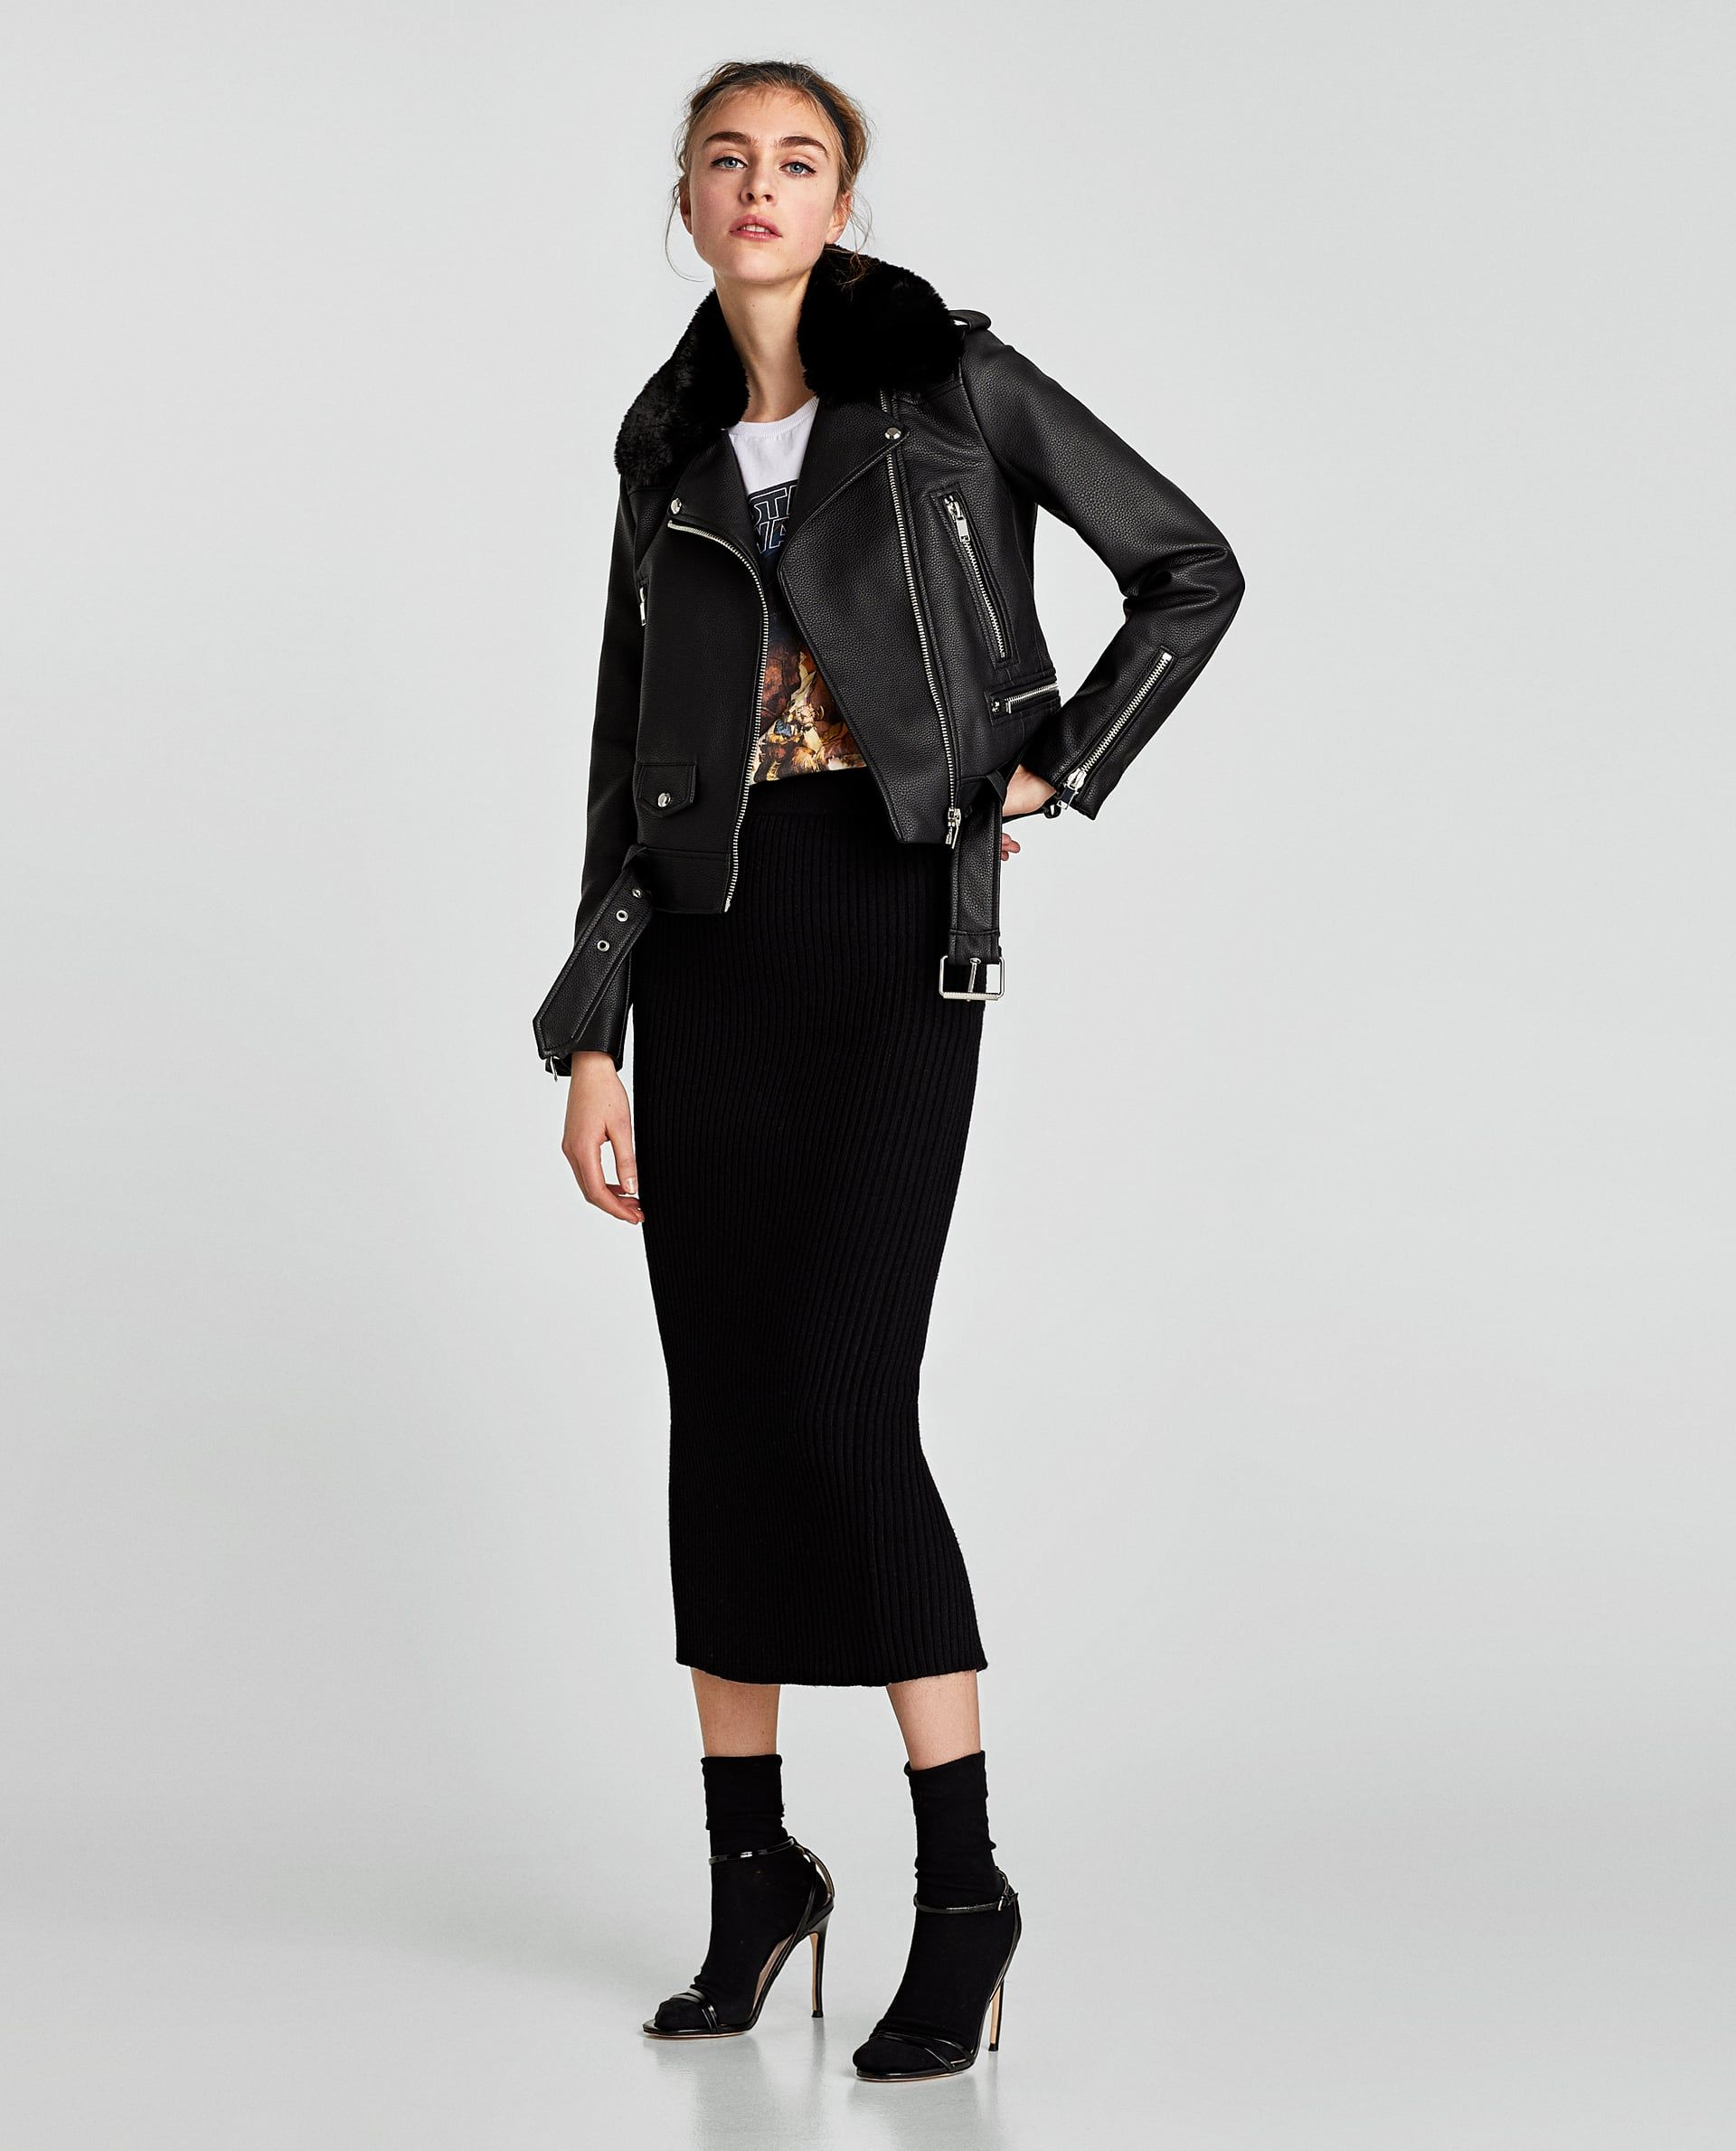 CAZADORA BIKER EFECTO PIEL Quirky fashion, Zara, Tube skirt